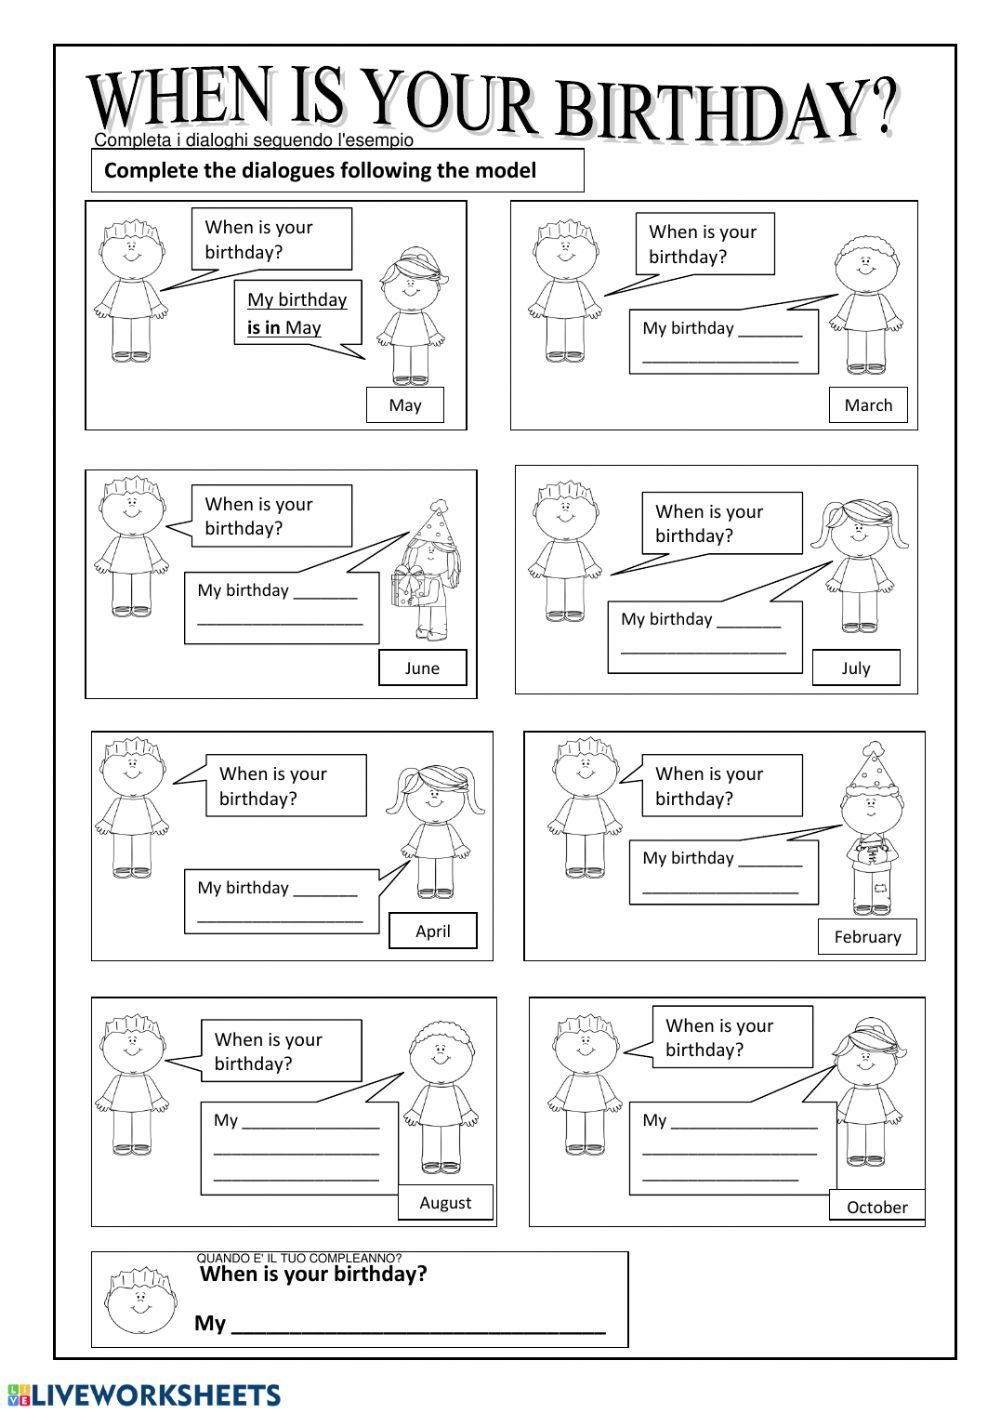 Birthday Interactive Worksheet In 2021 Interactive Activities Its My Birthday Month English As A Second Language [ 1413 x 1000 Pixel ]